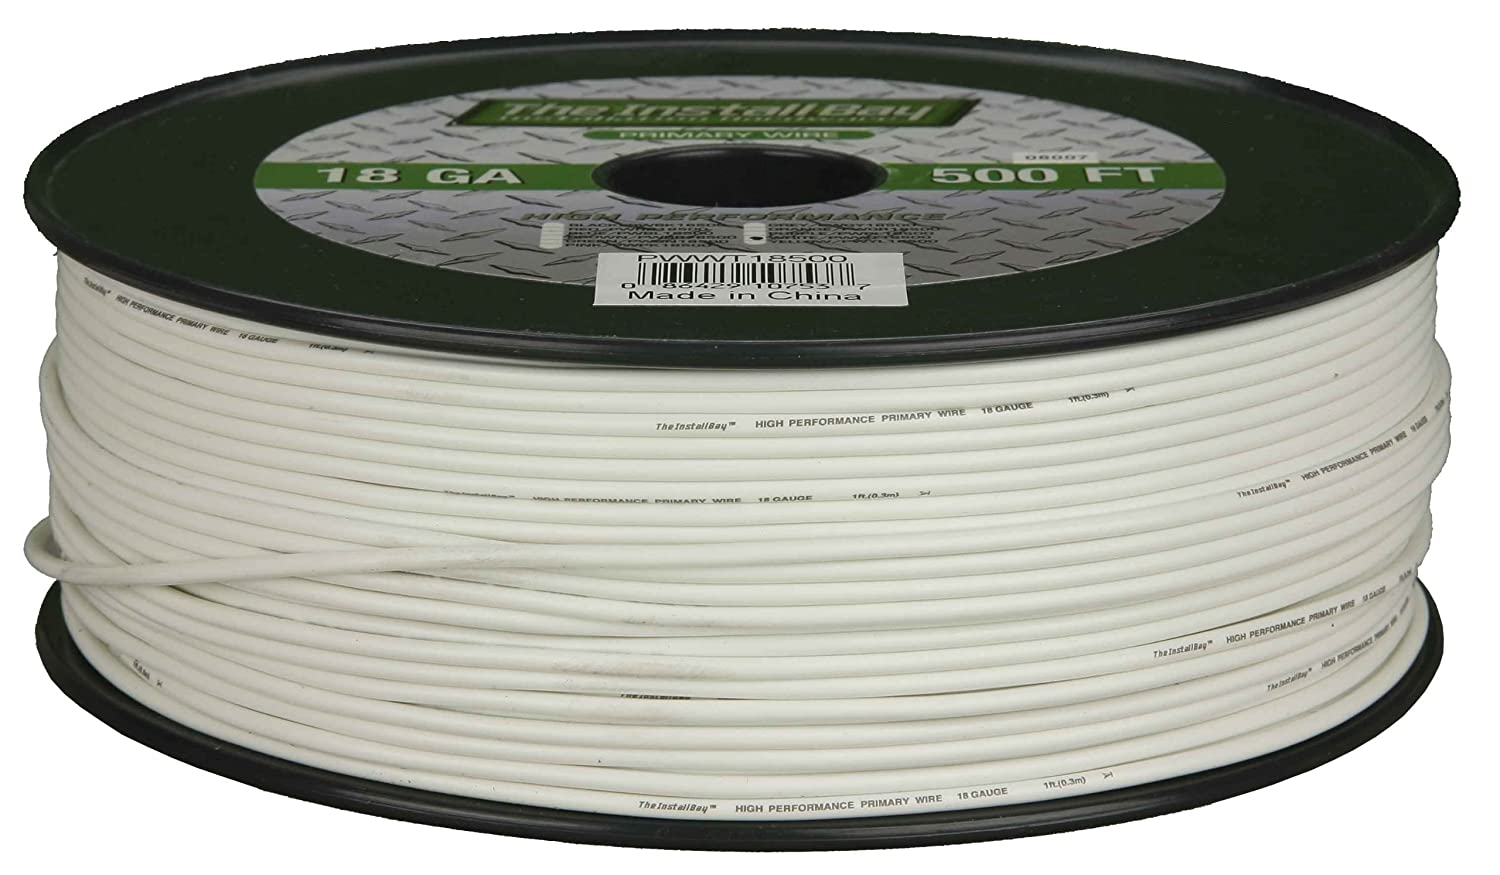 White Metra PWWT16500 16 Gauge Primary Wire